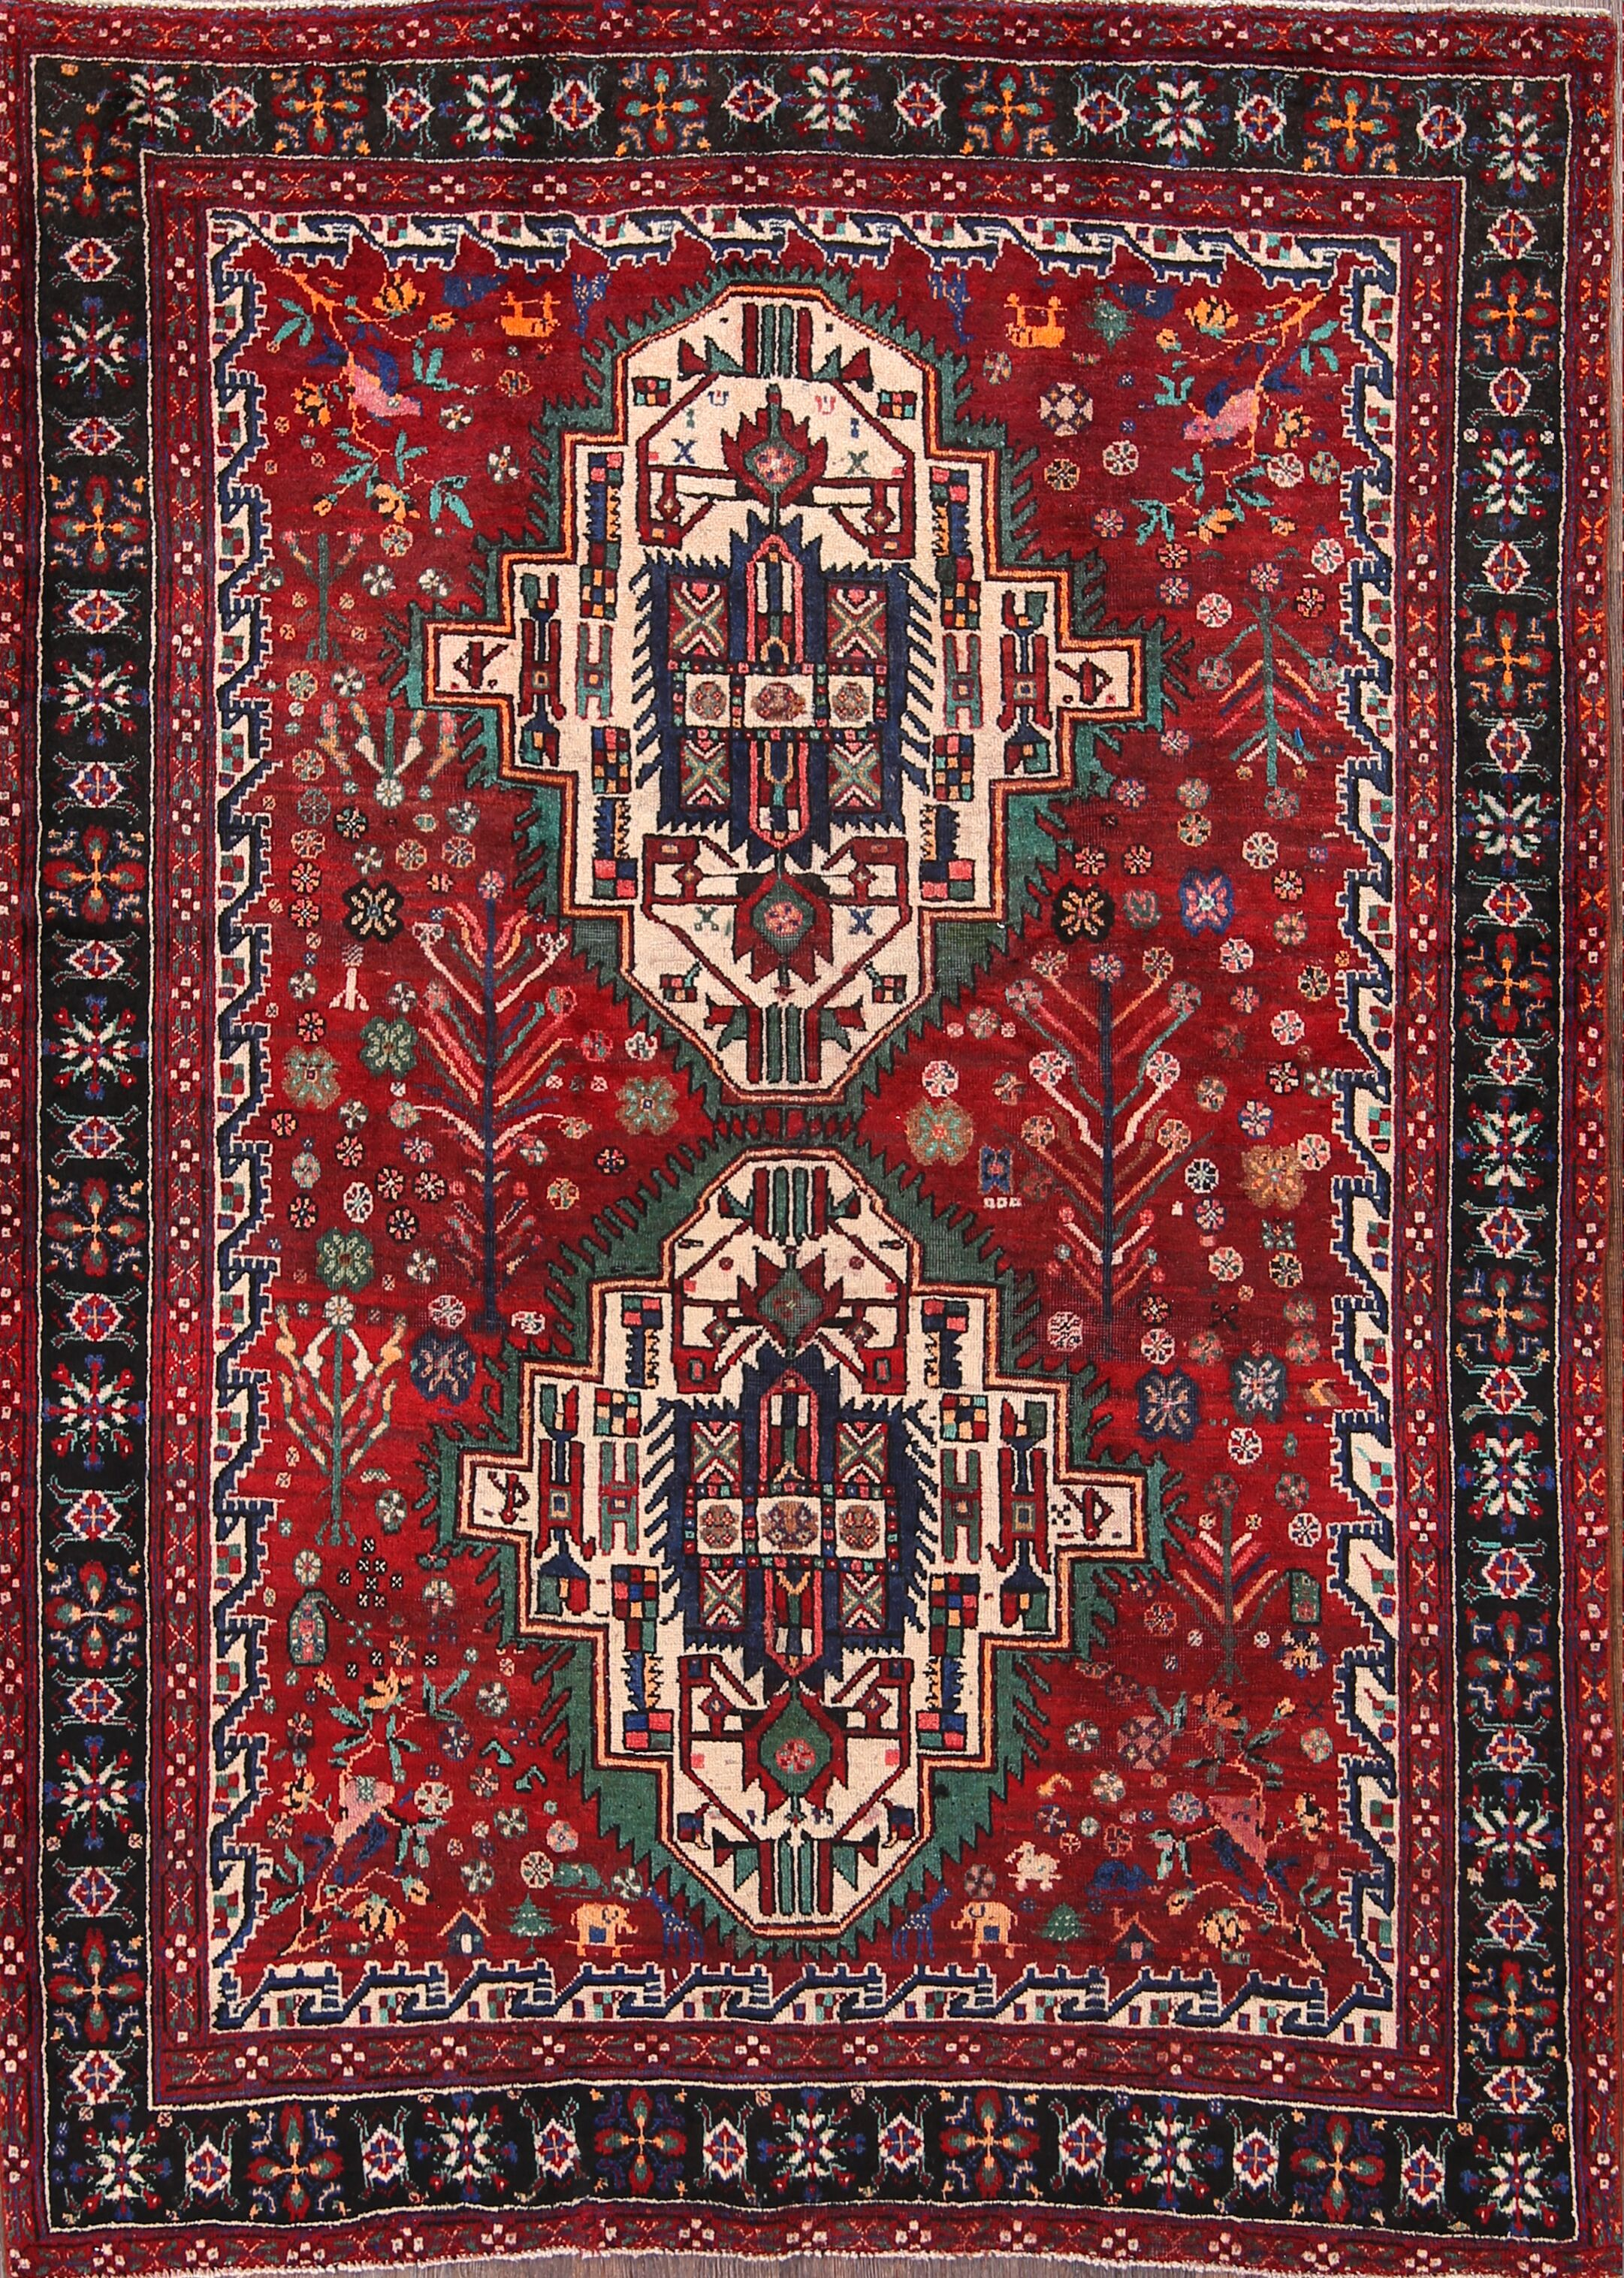 One-of-a-Kind Afshar Traditional Persian Hand-Knotted 5'2